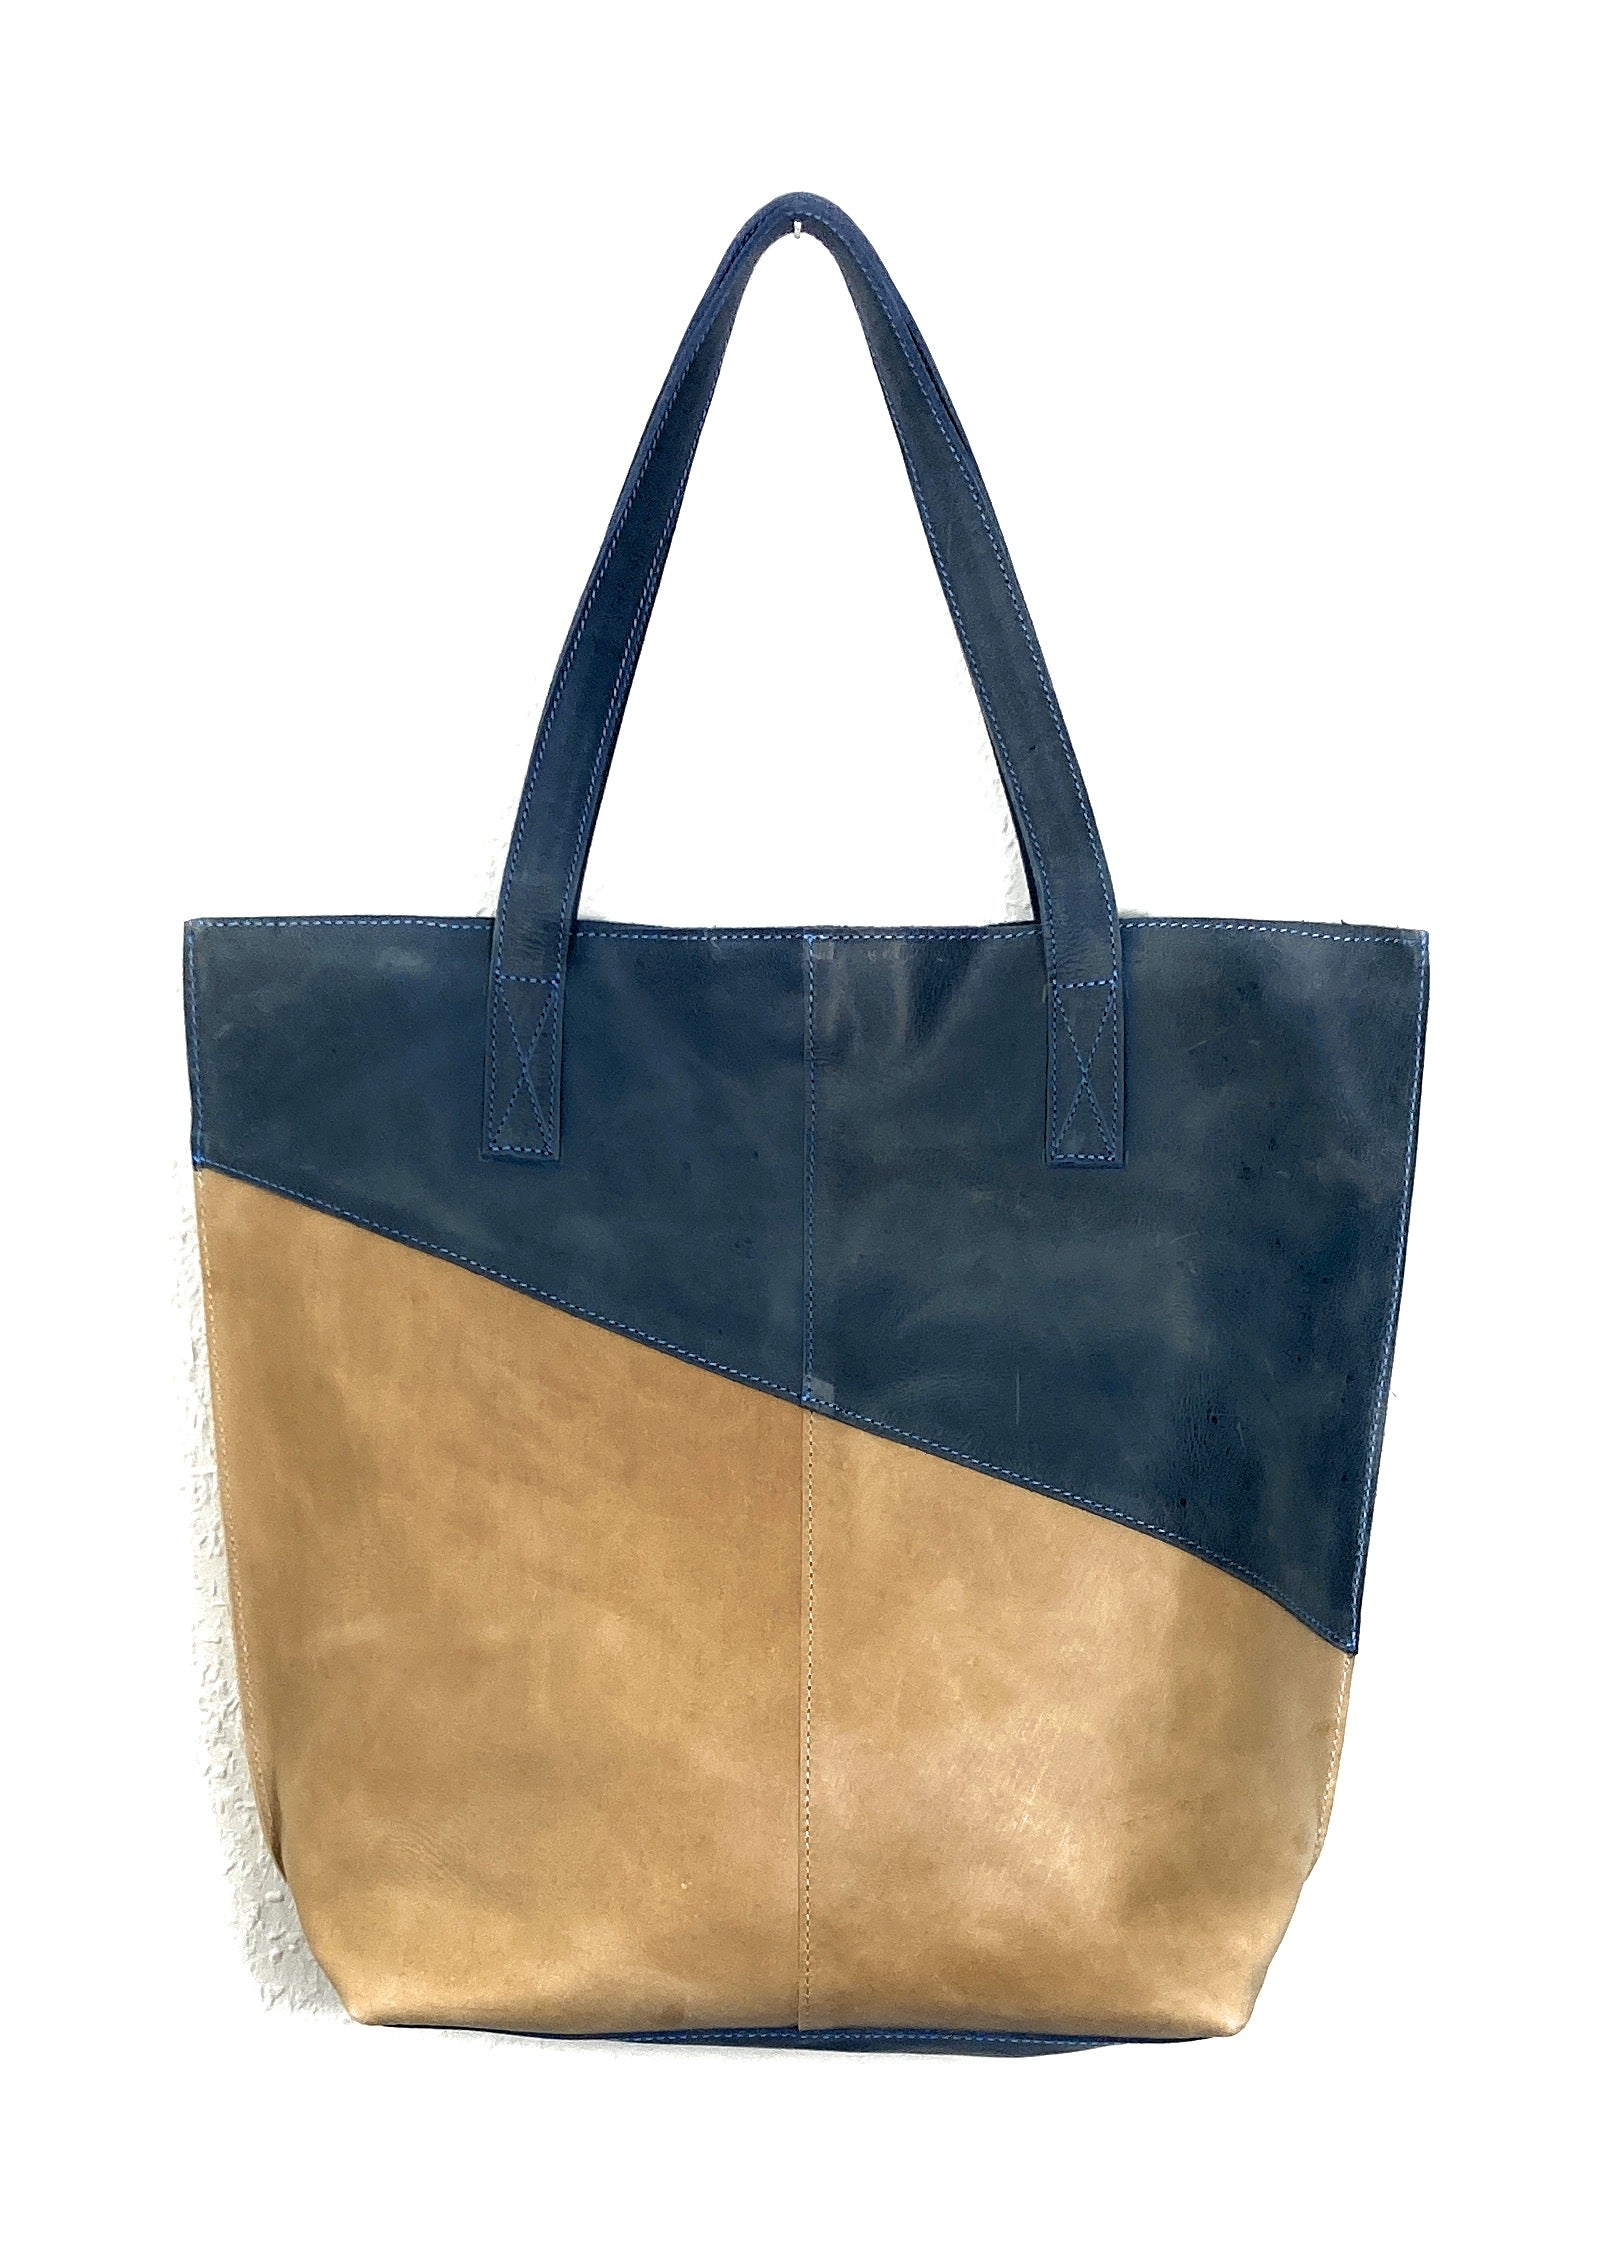 Tote Bag Square -blue-